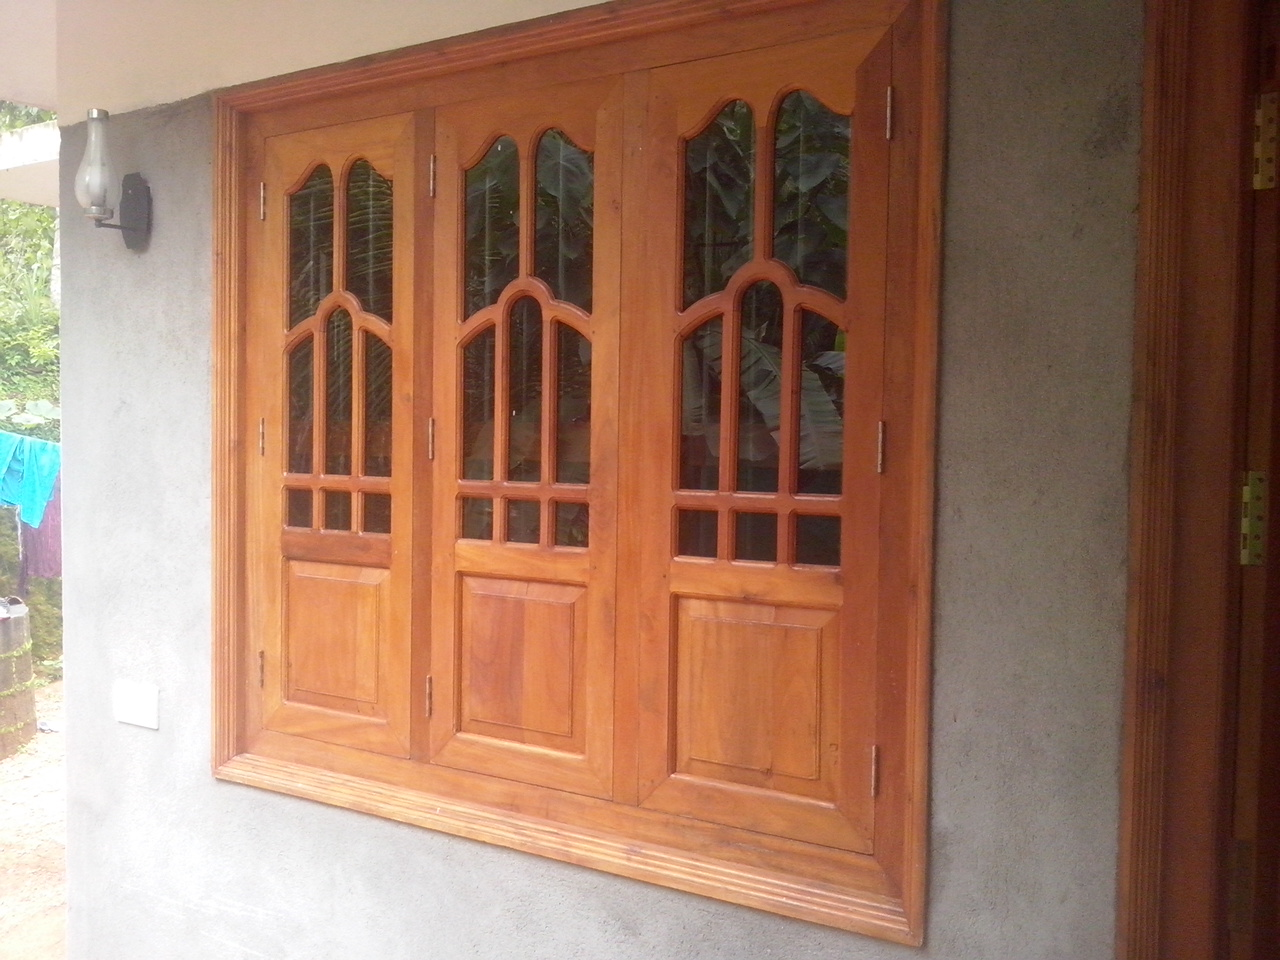 Bavas wood works kerala style wooden window door designs for Window door design